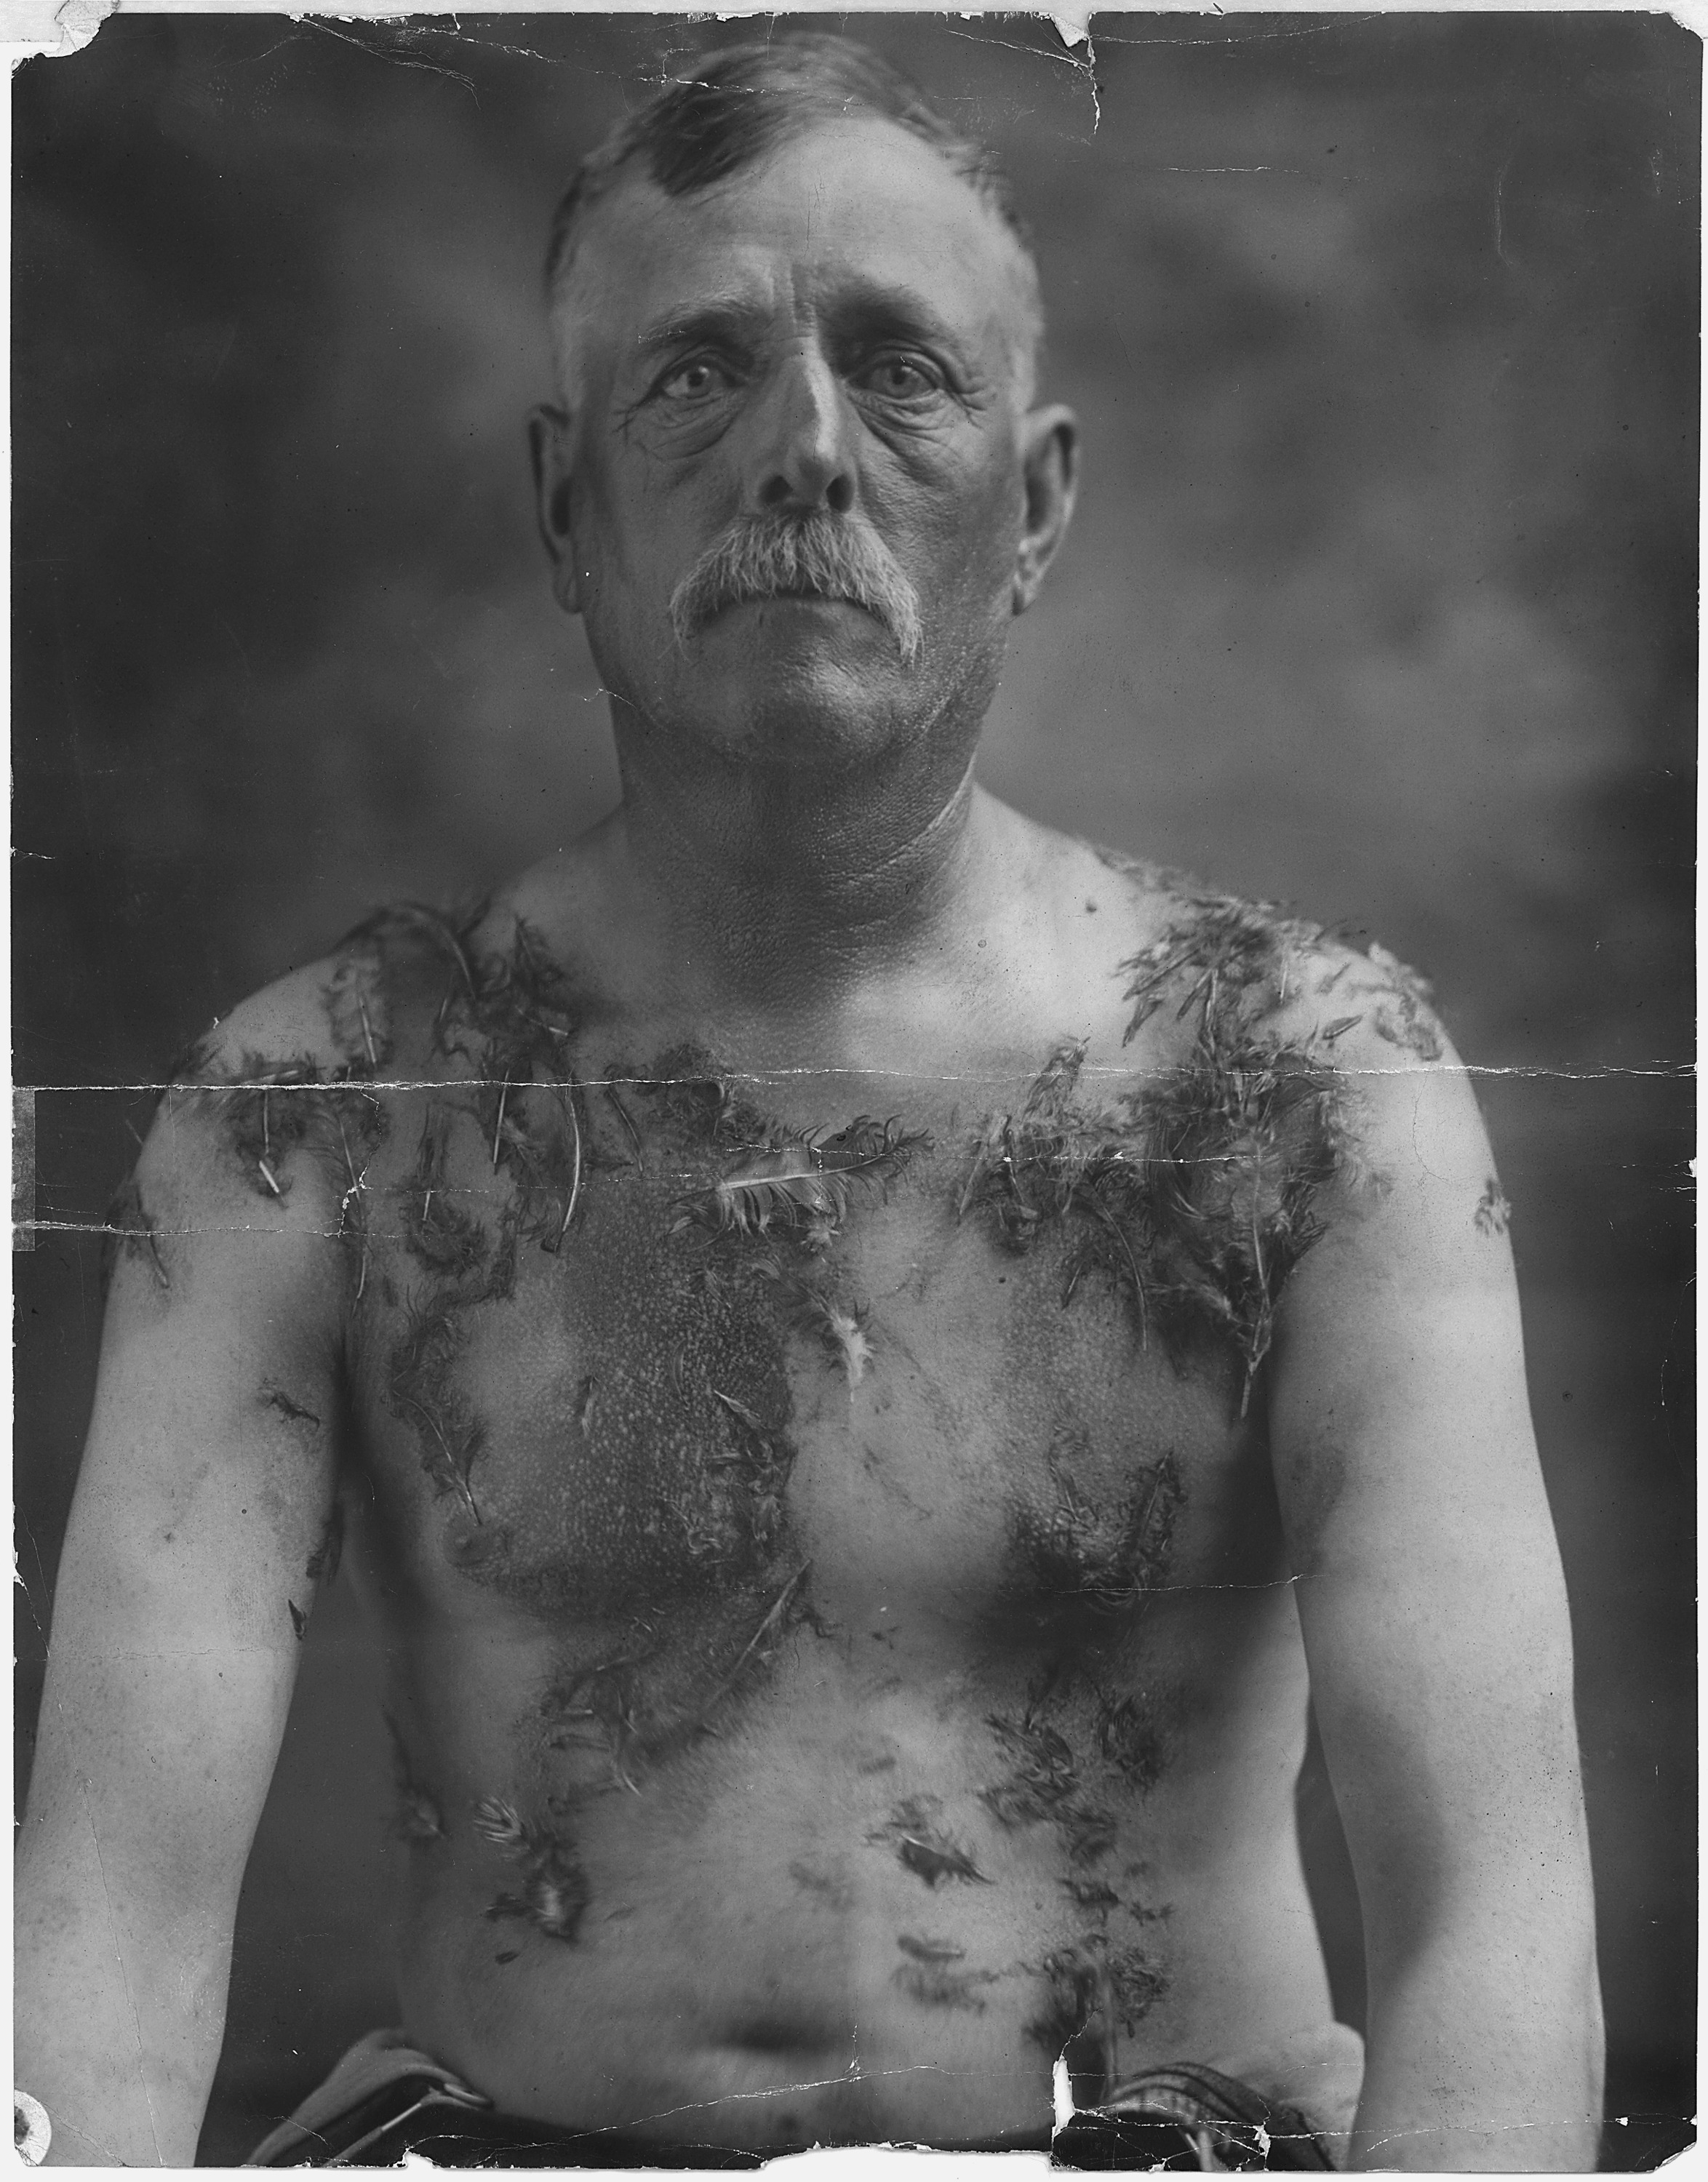 John Meints was tarred and feathered in Minnesota during World War I